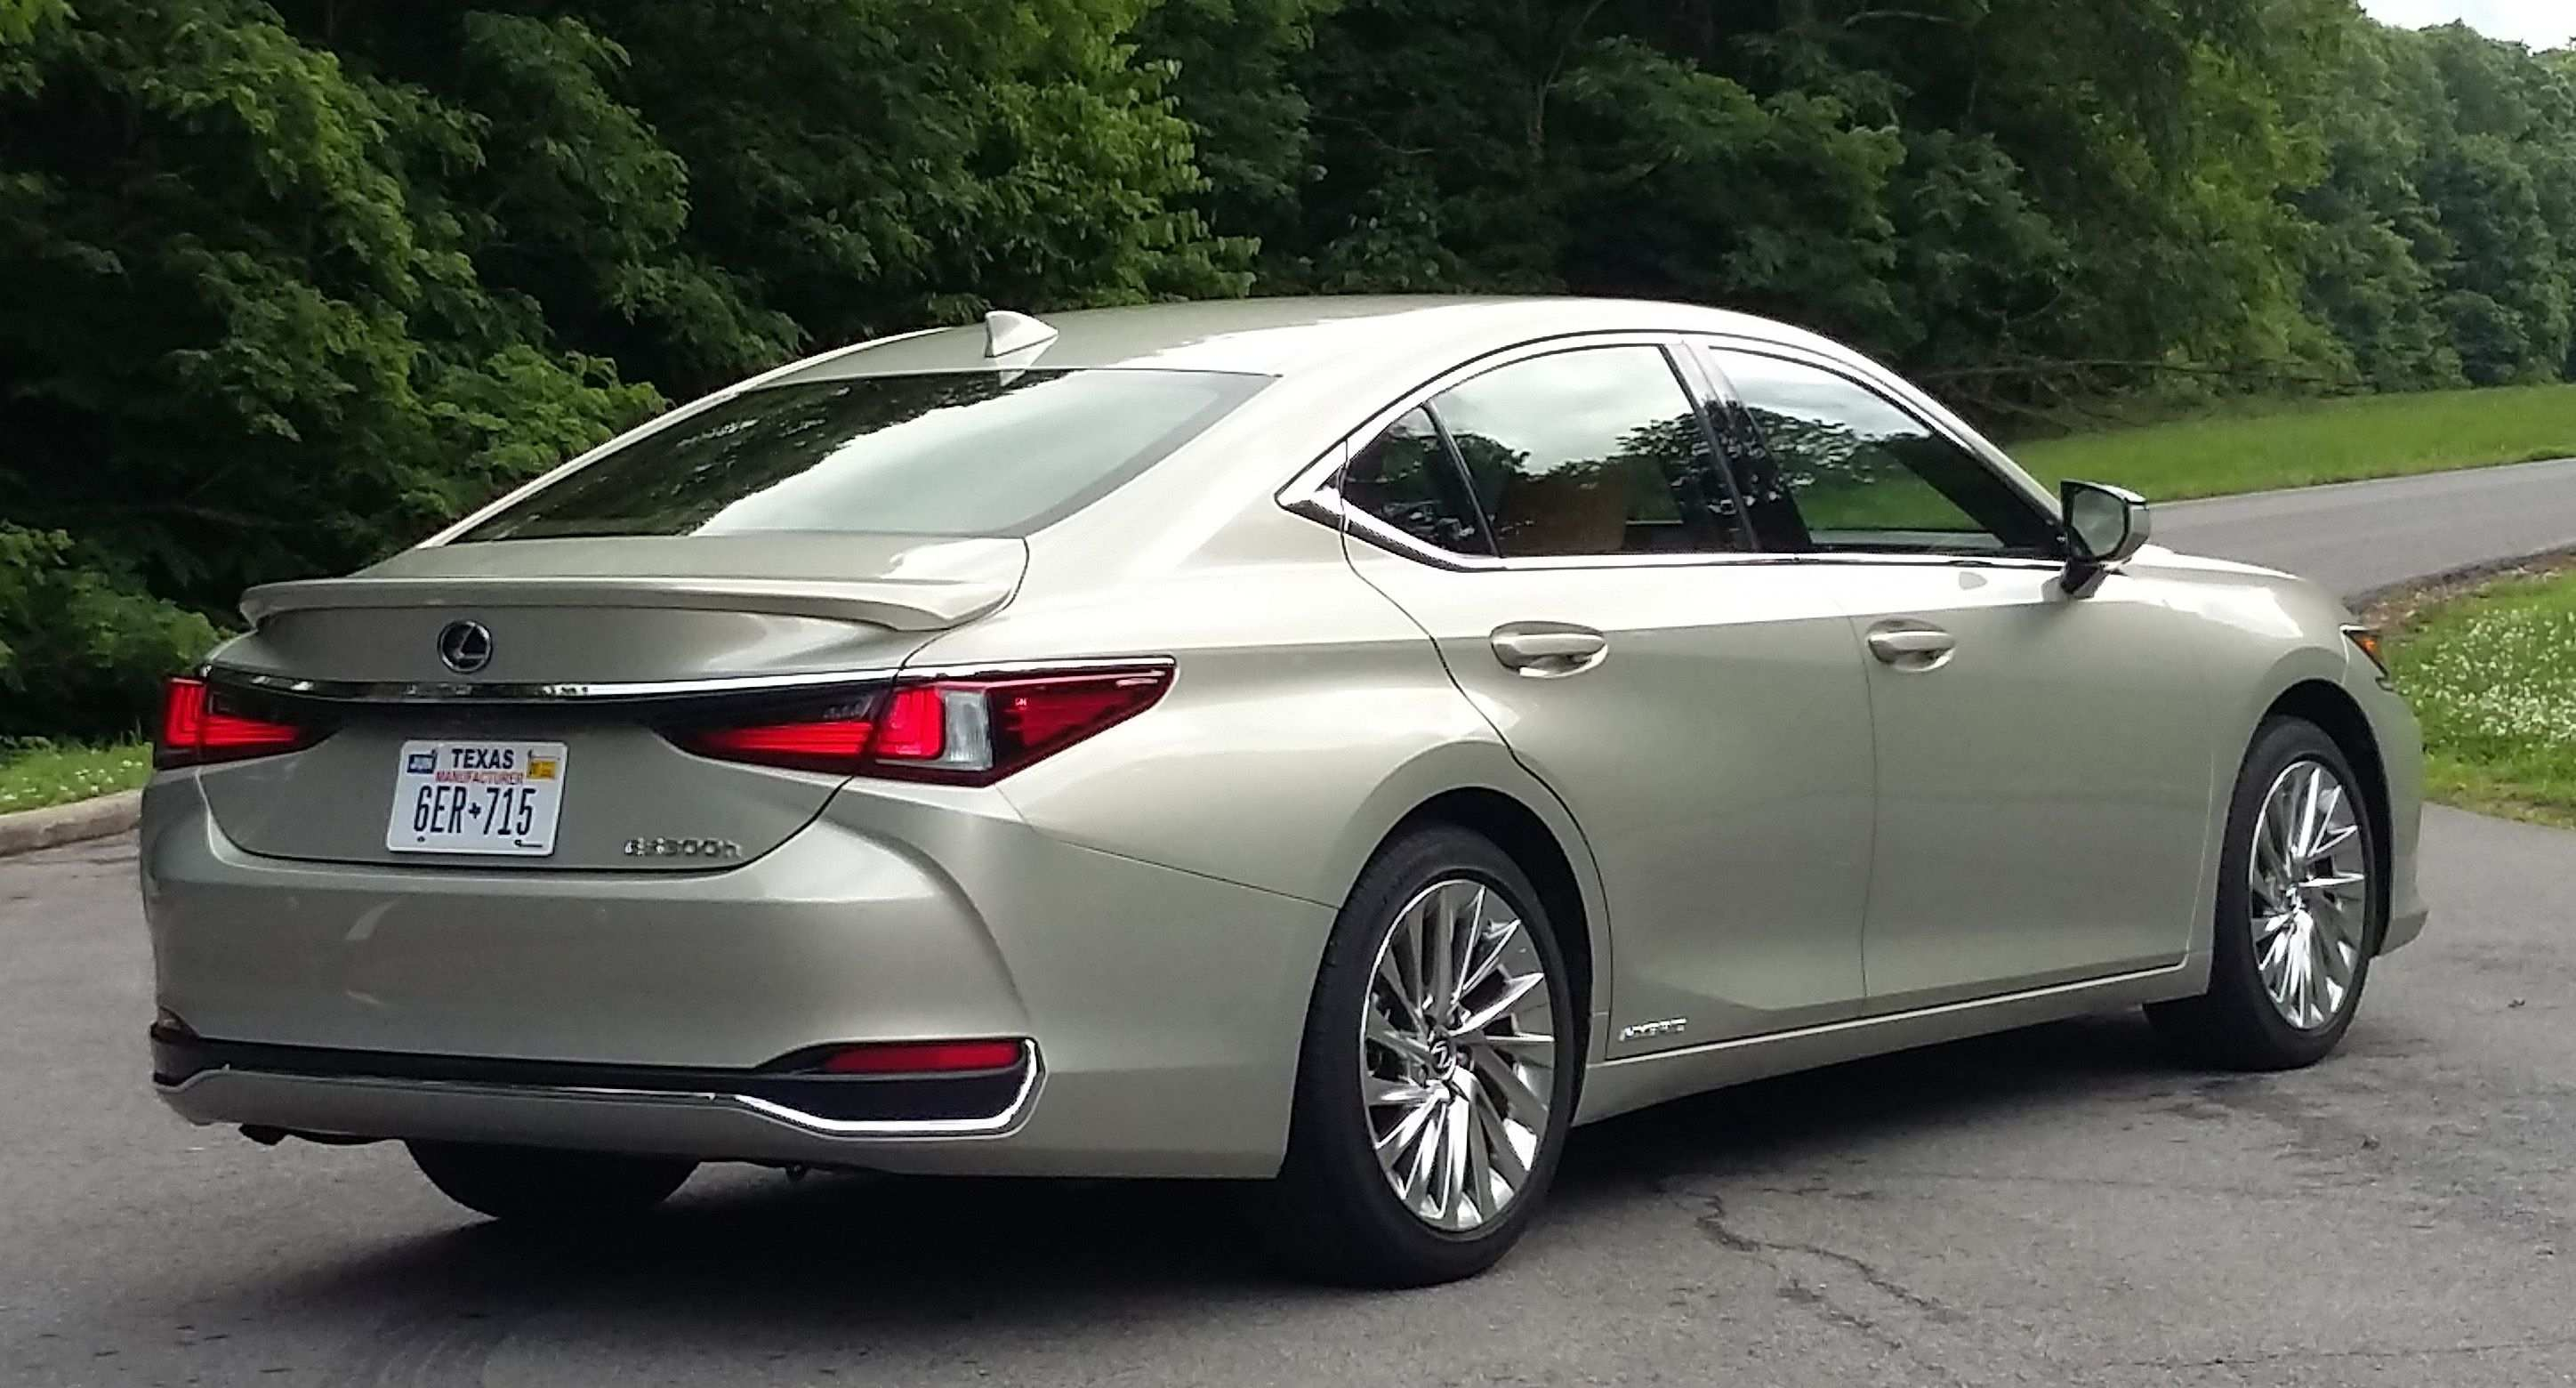 74 New When Do 2019 Lexus Come Out New Concept with When Do 2019 Lexus Come Out